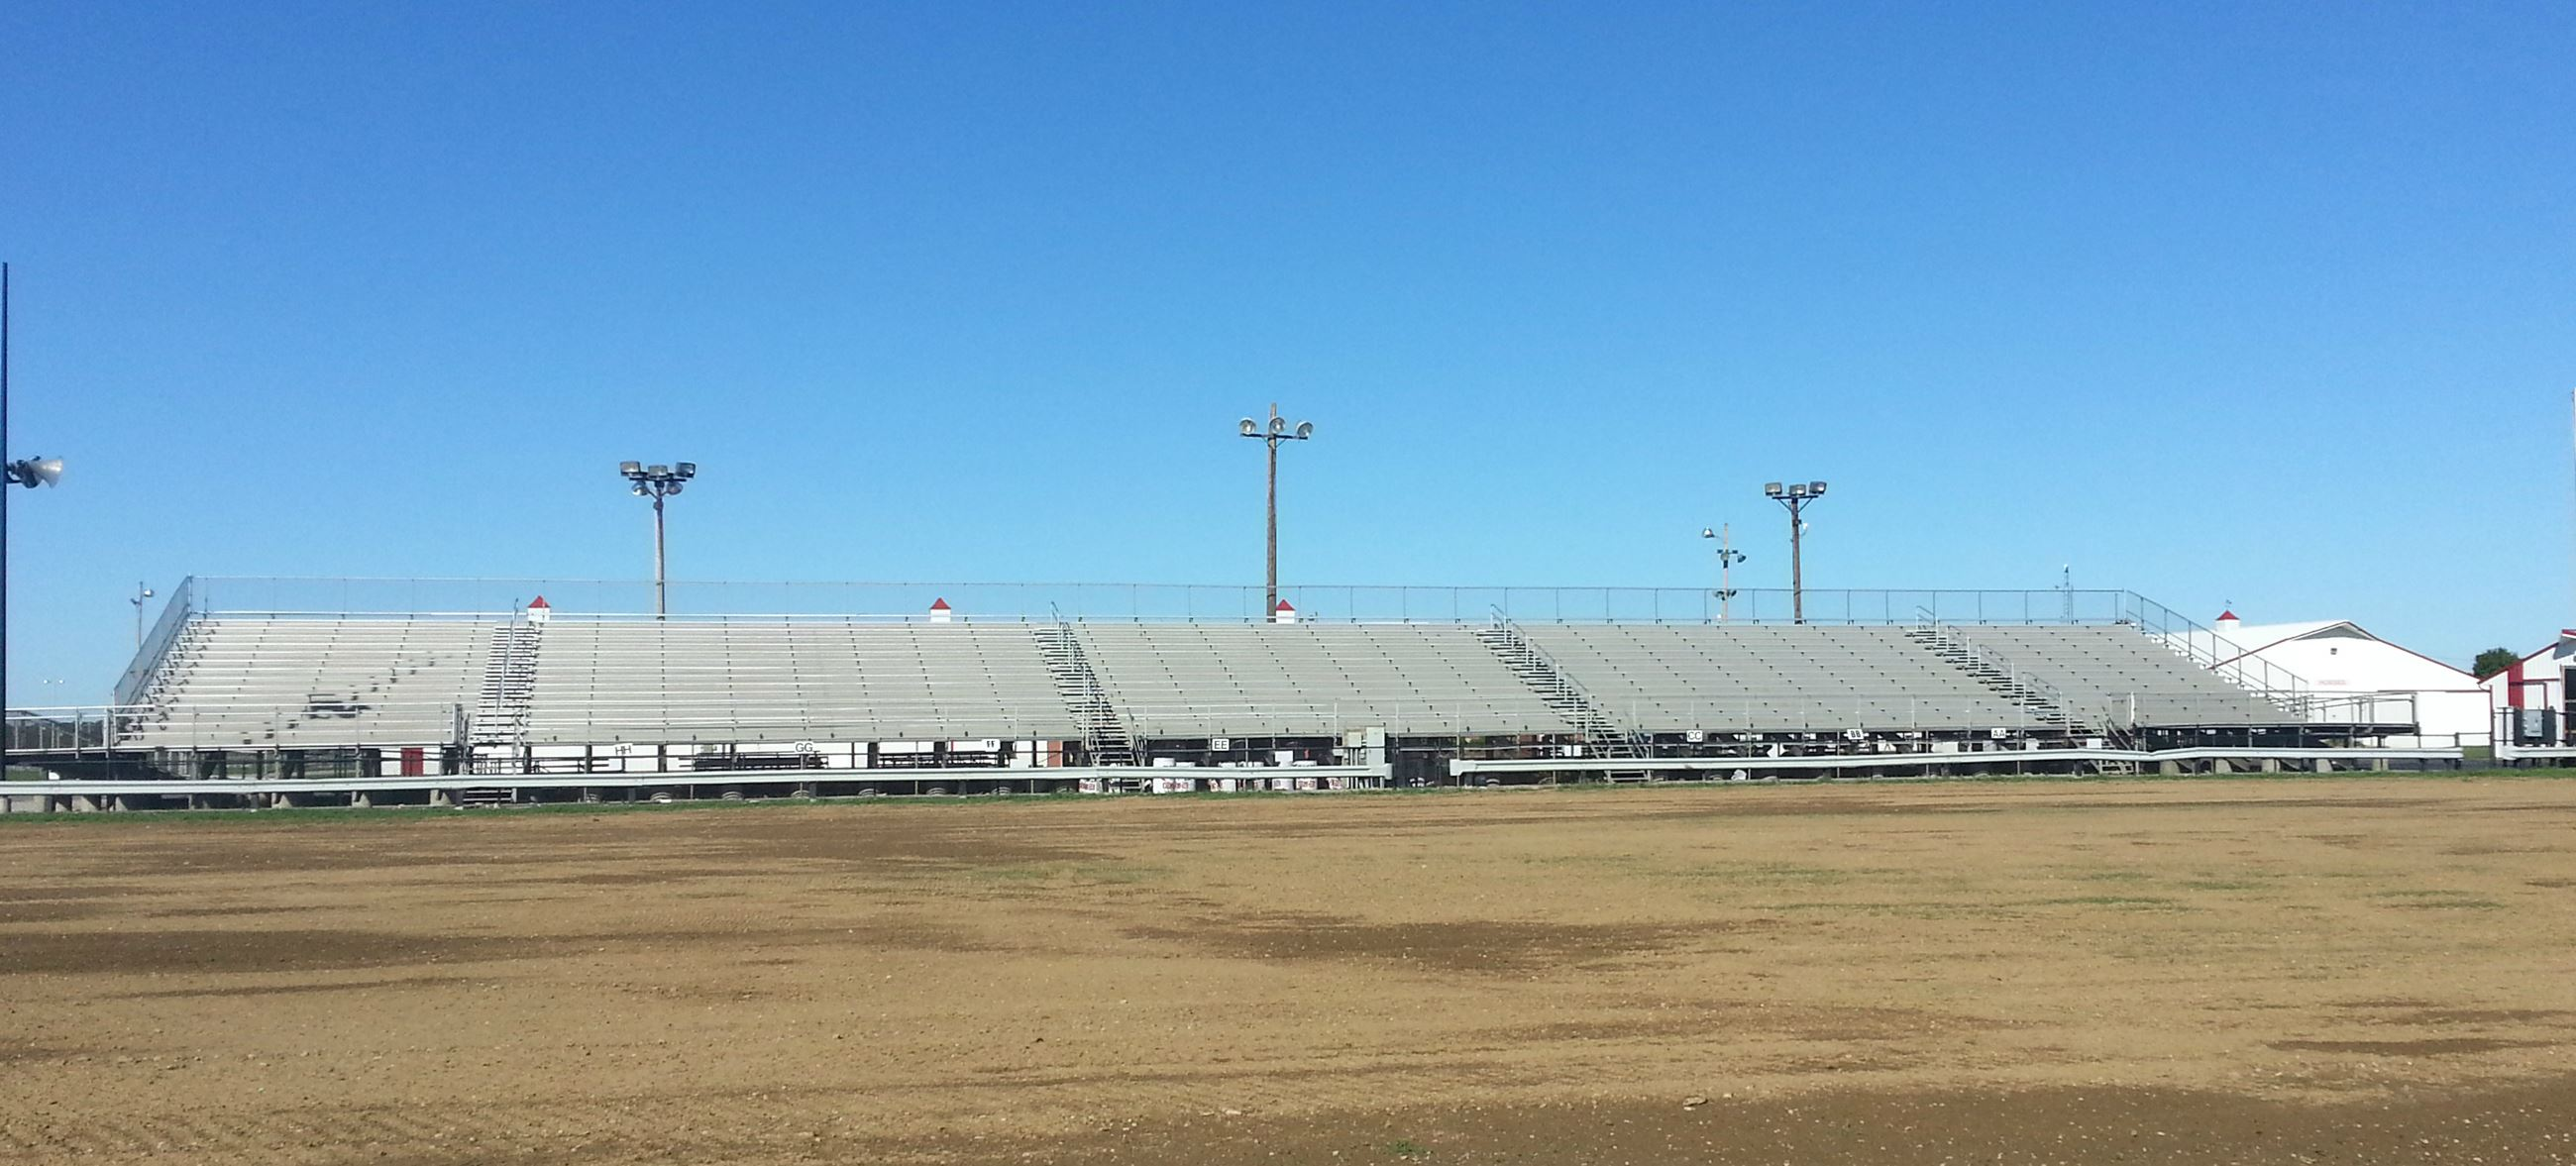 Empty grandstand at the Porter County Expo Center